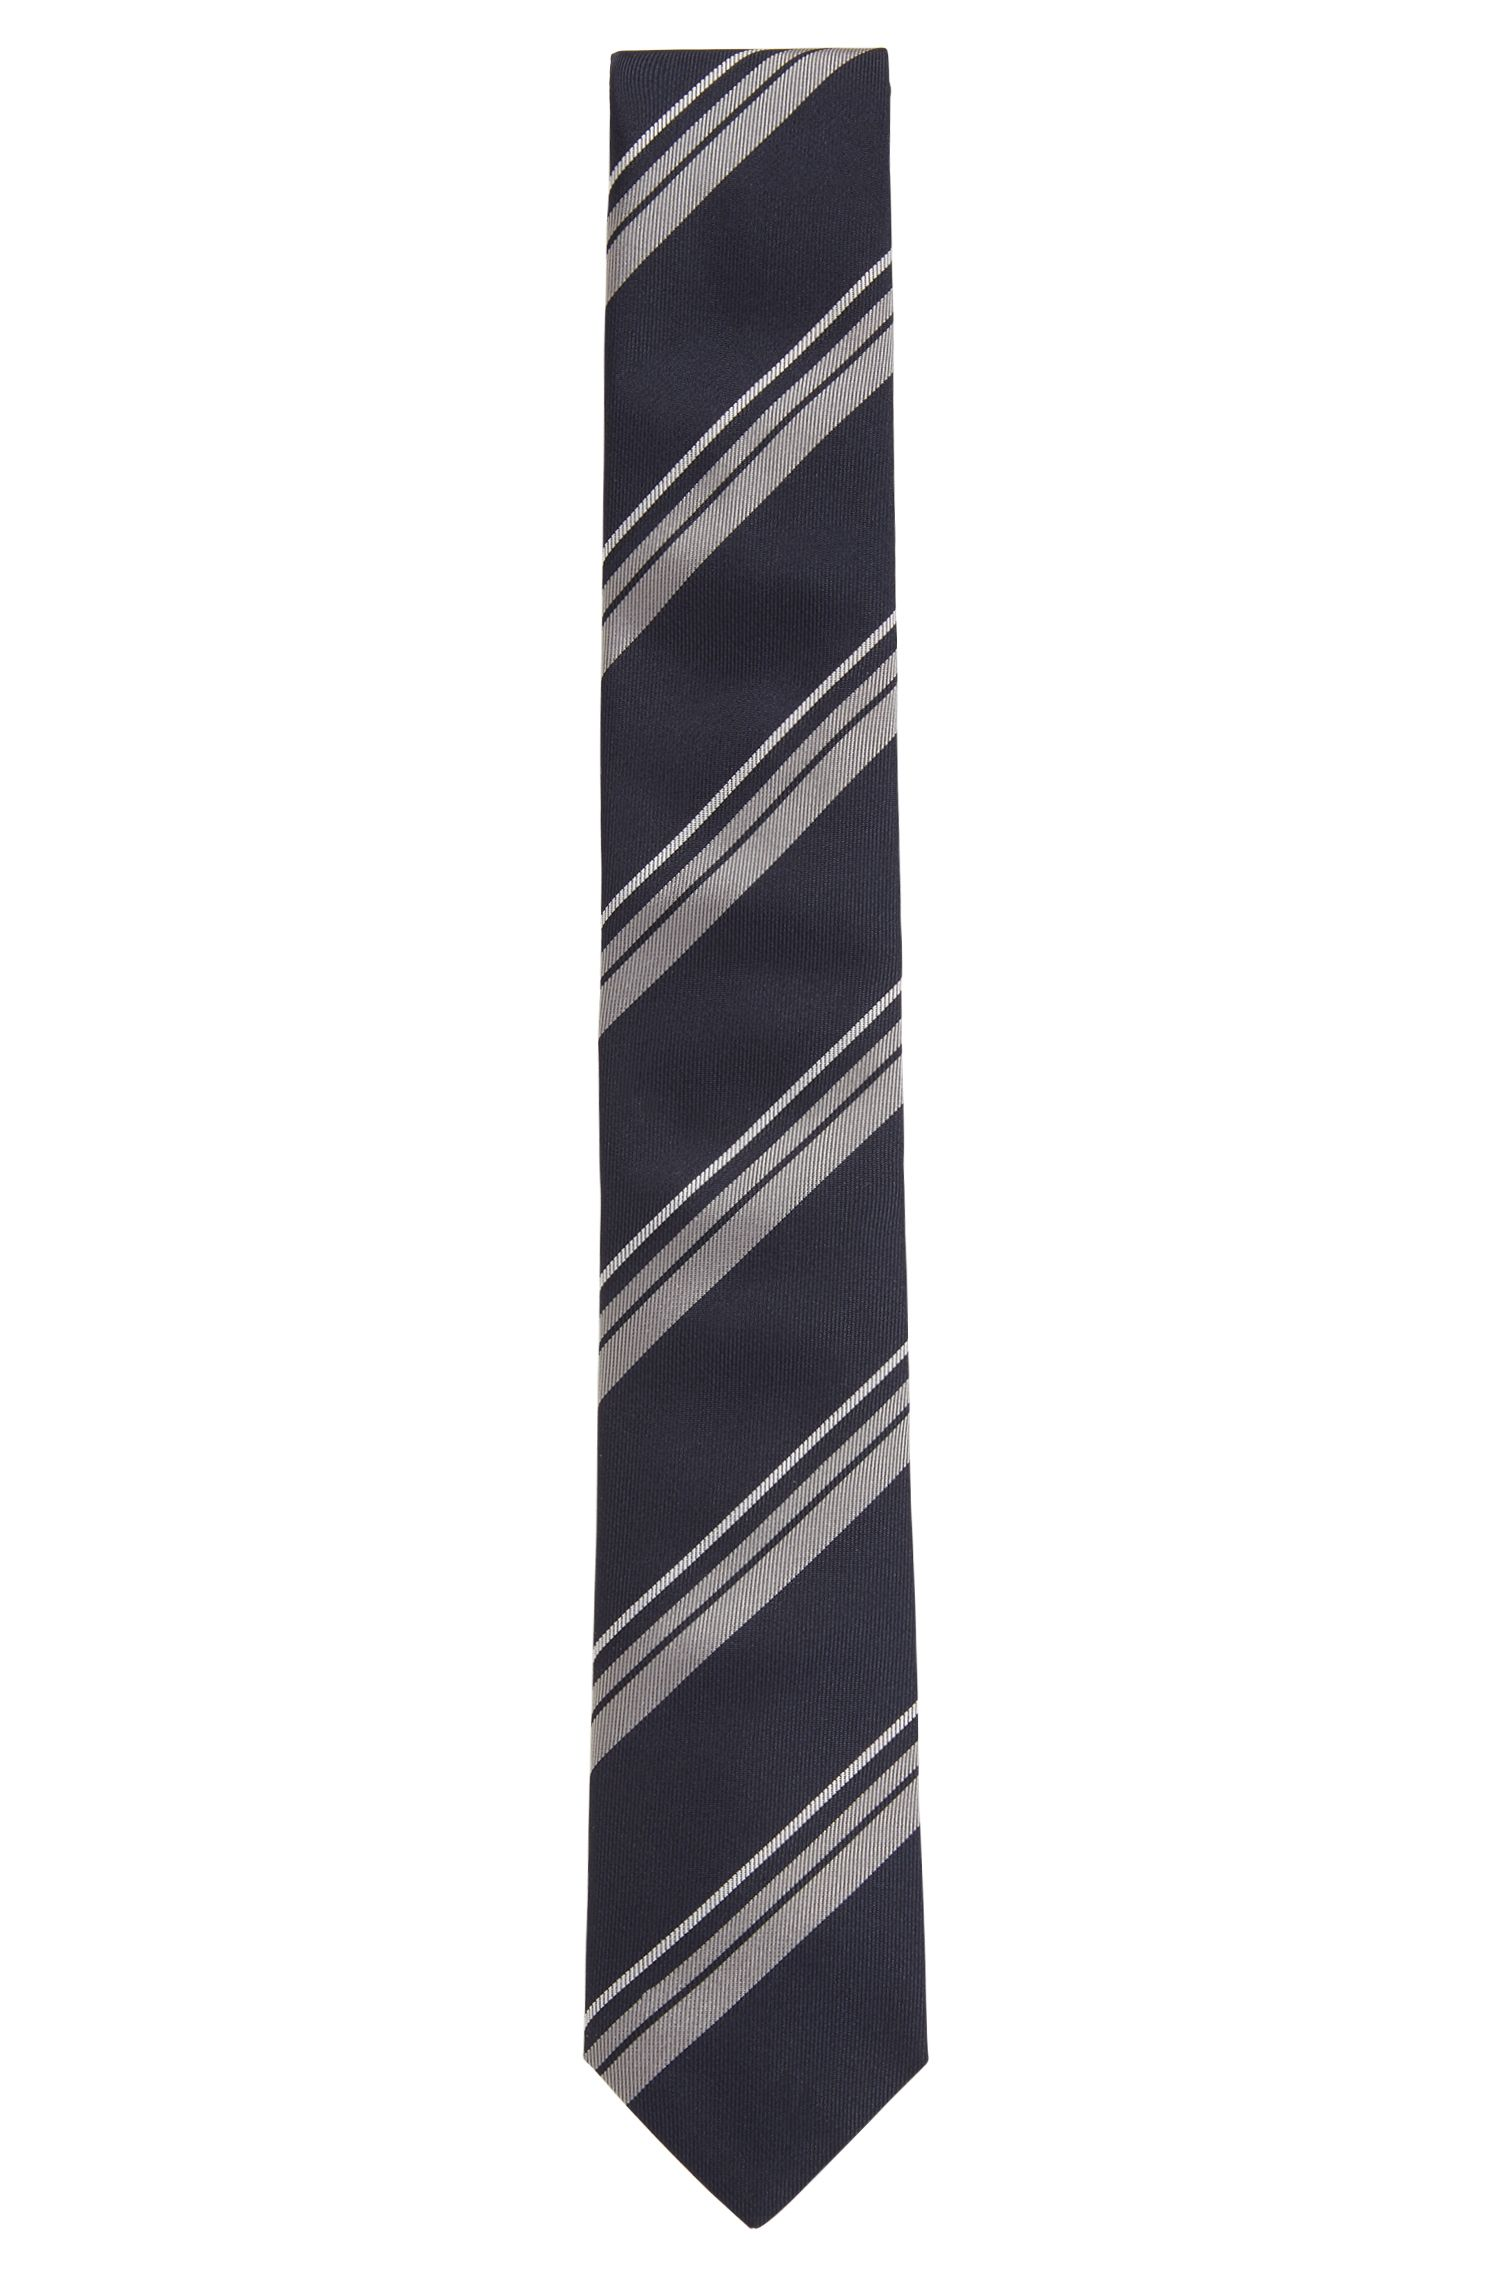 Diagonal-striped tie in silk jacquard HUGO BOSS